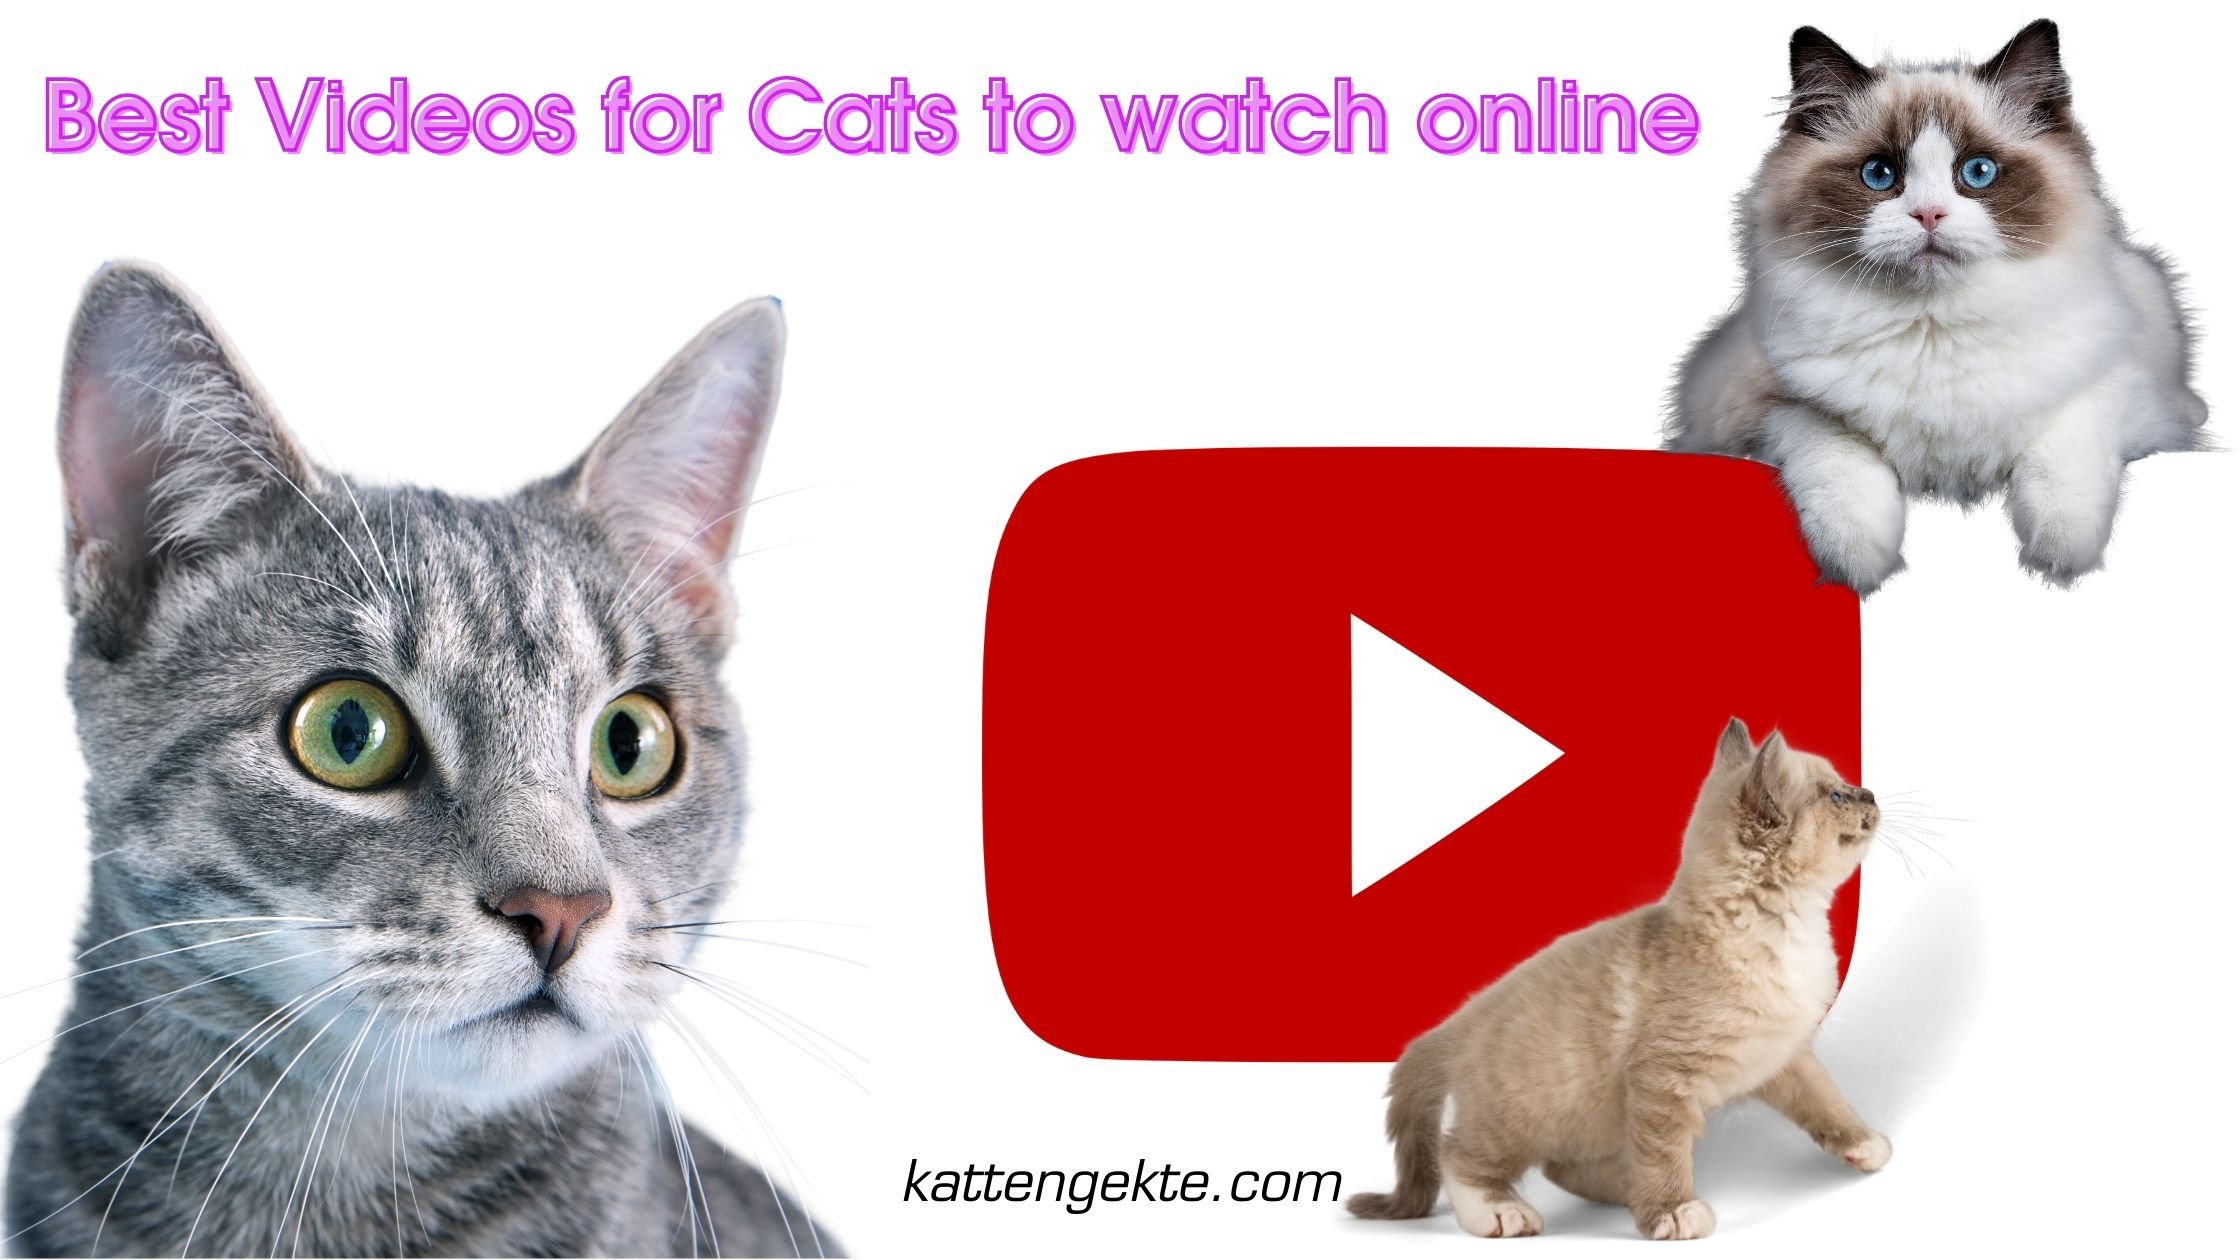 Best Videos for Cats to watch online